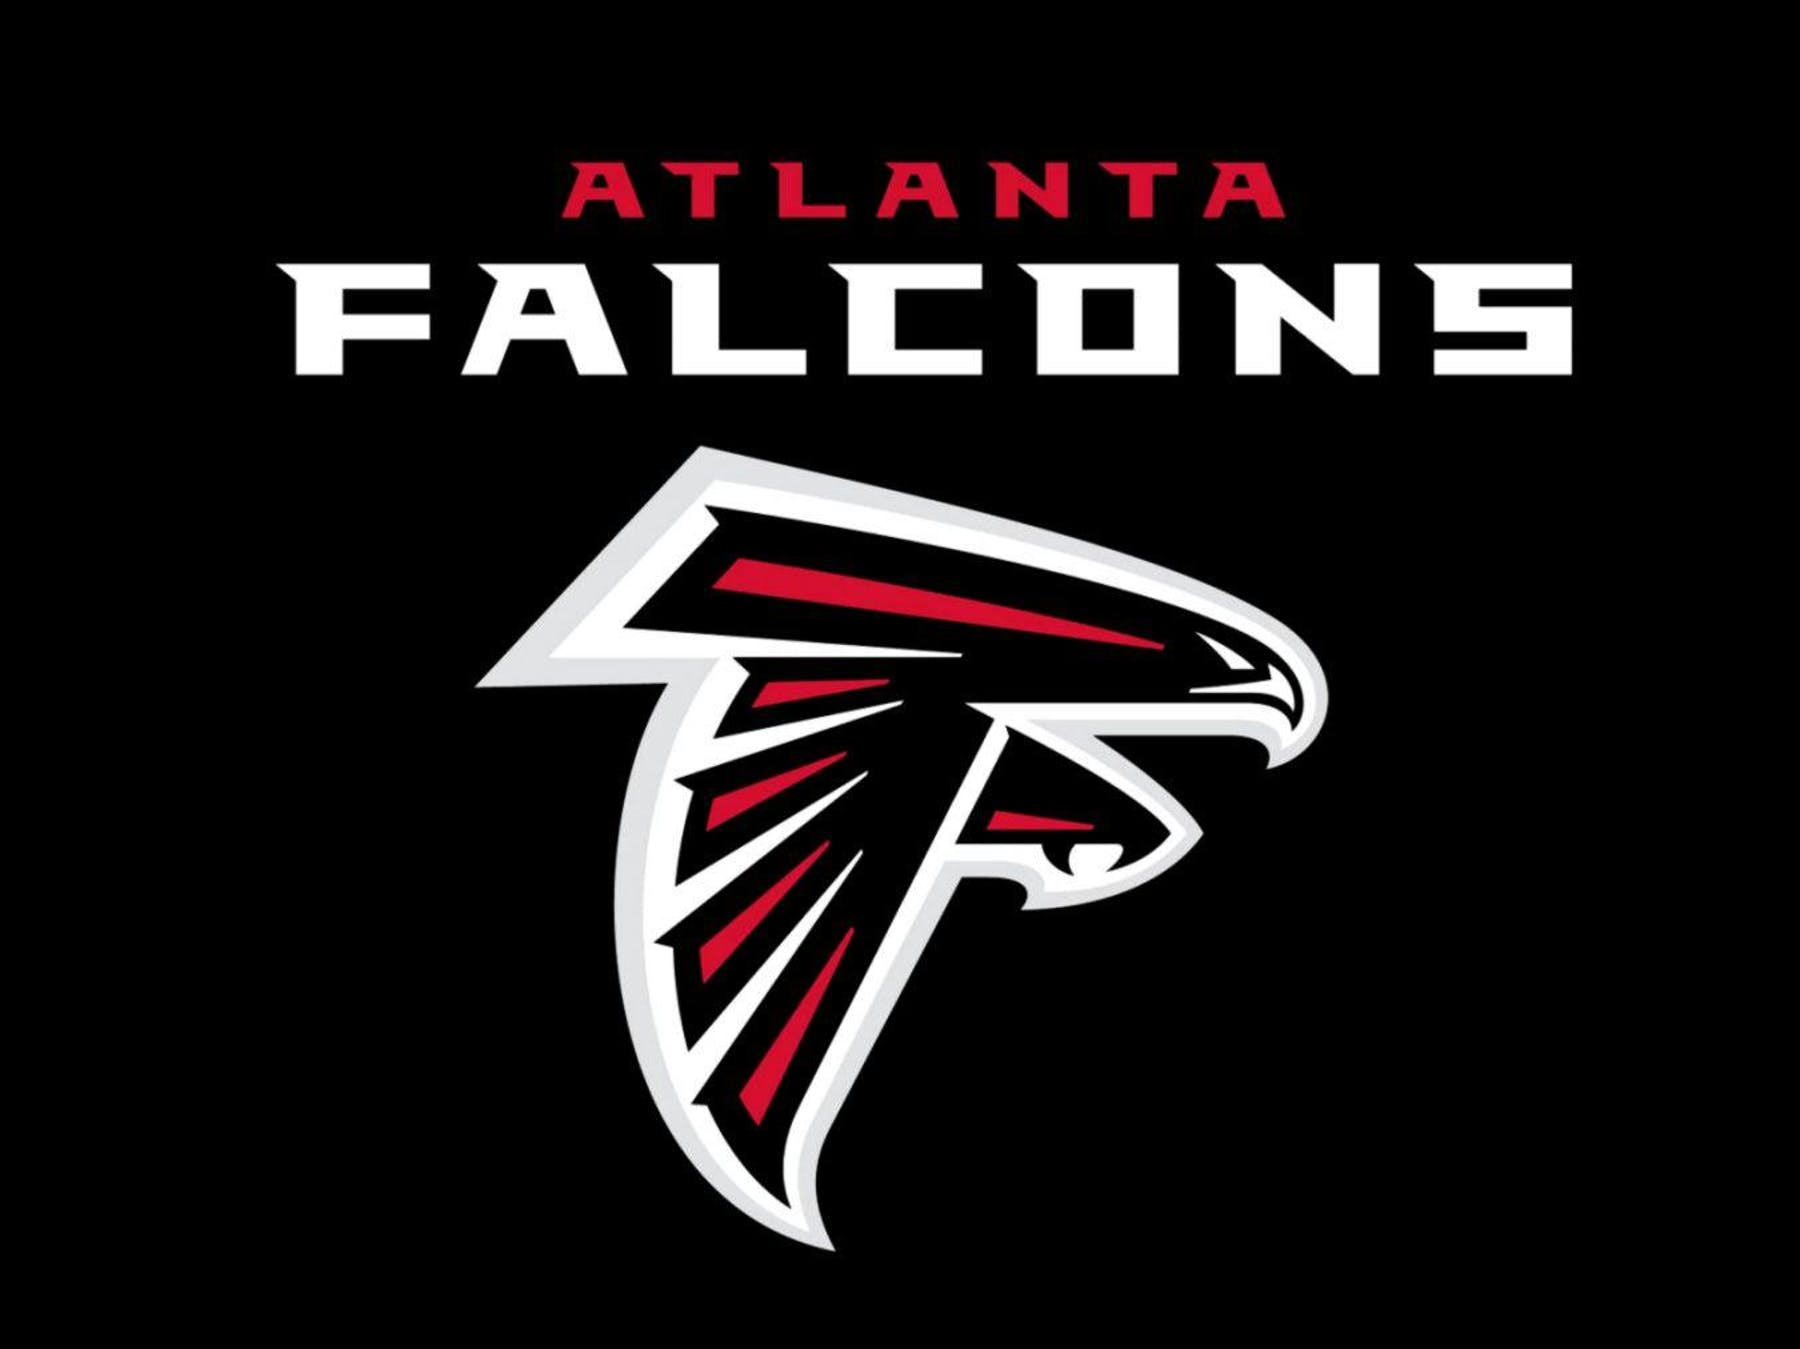 size 40 a3ce3 88332 Atlanta Falcons Officially Licensed NFL Apparel Liquidation - 300+ Items,  $10,200+ SRP!